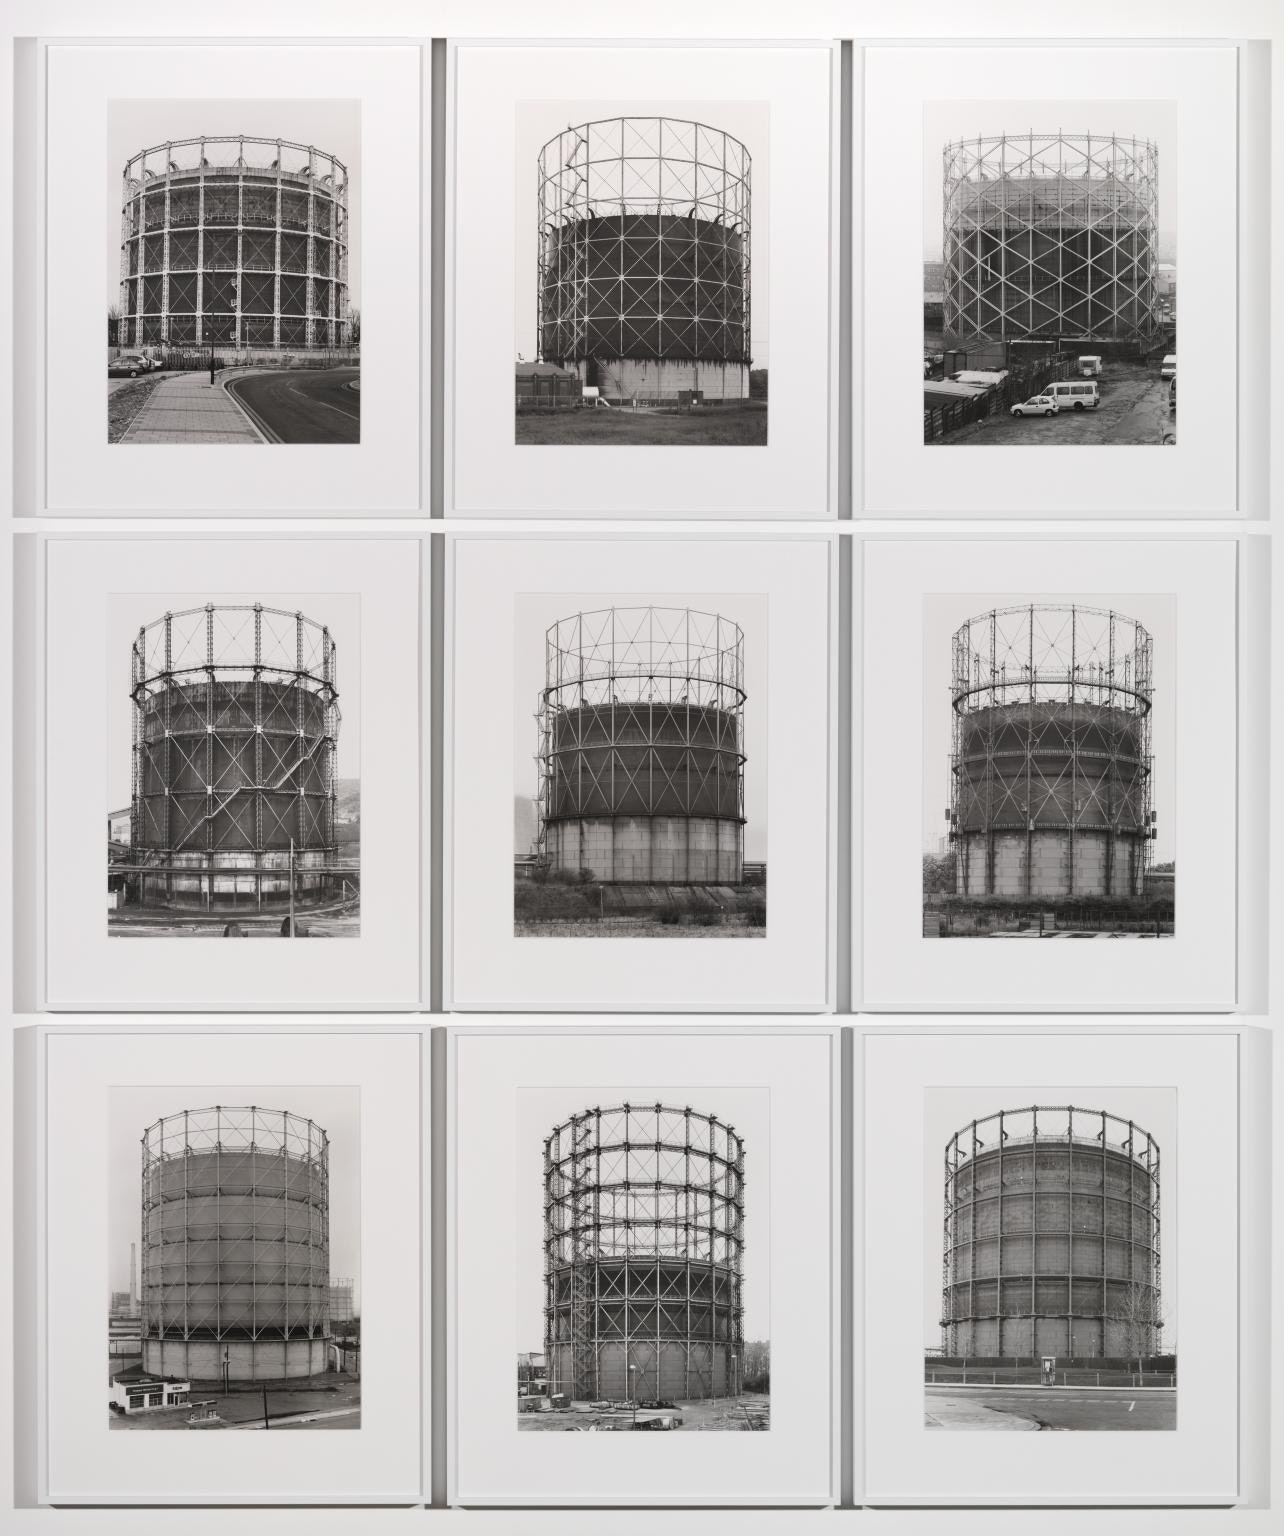 Gas Tanks 1965?2009 by Bernd Becher and Hilla Becher 1931-2007, 1934-2015